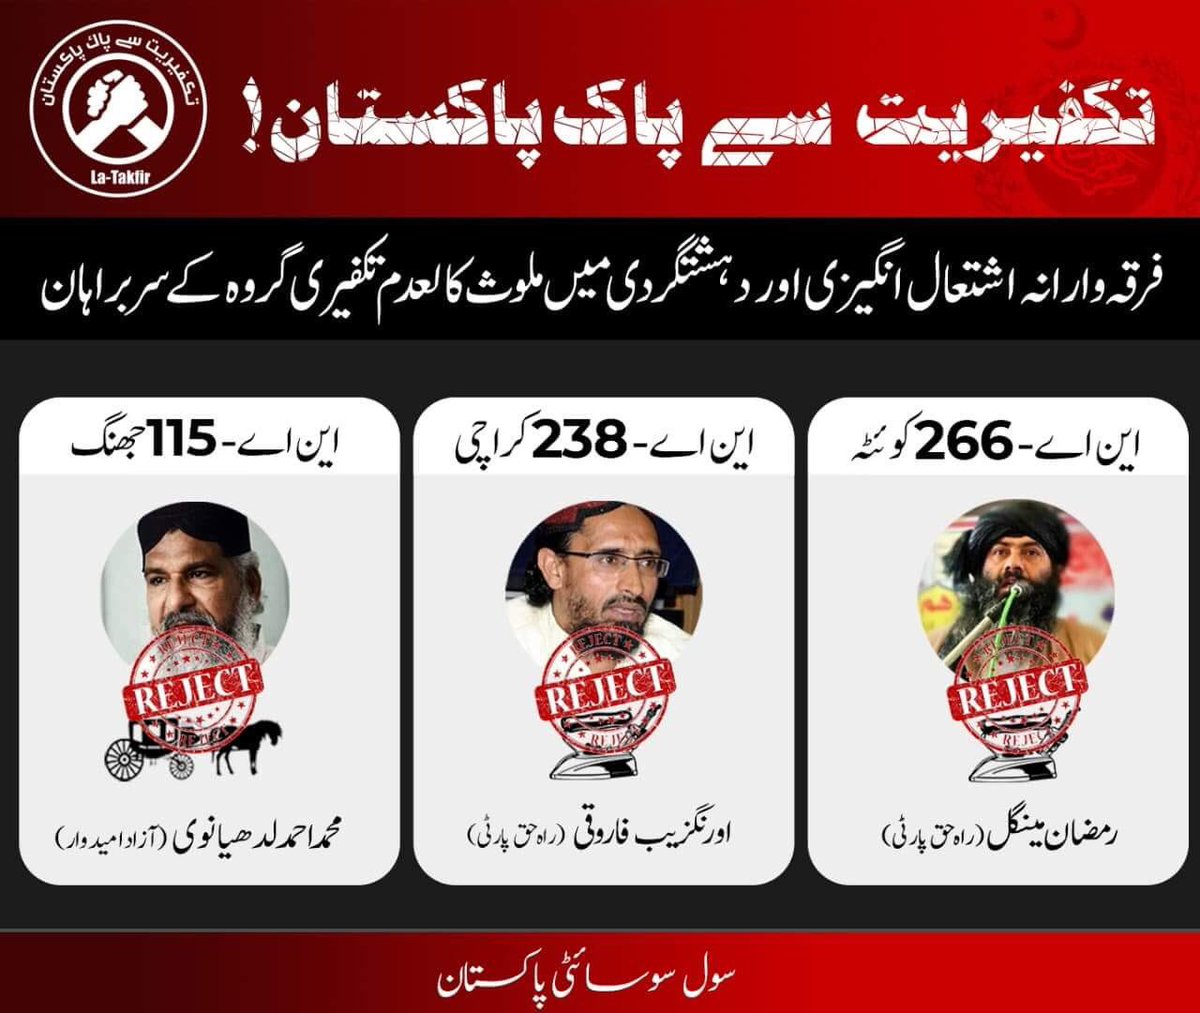 Vote For A Pakistan Free Of Takfirism And Religious Extremism Do Not These People Who Spread Hatred In The Name Religion